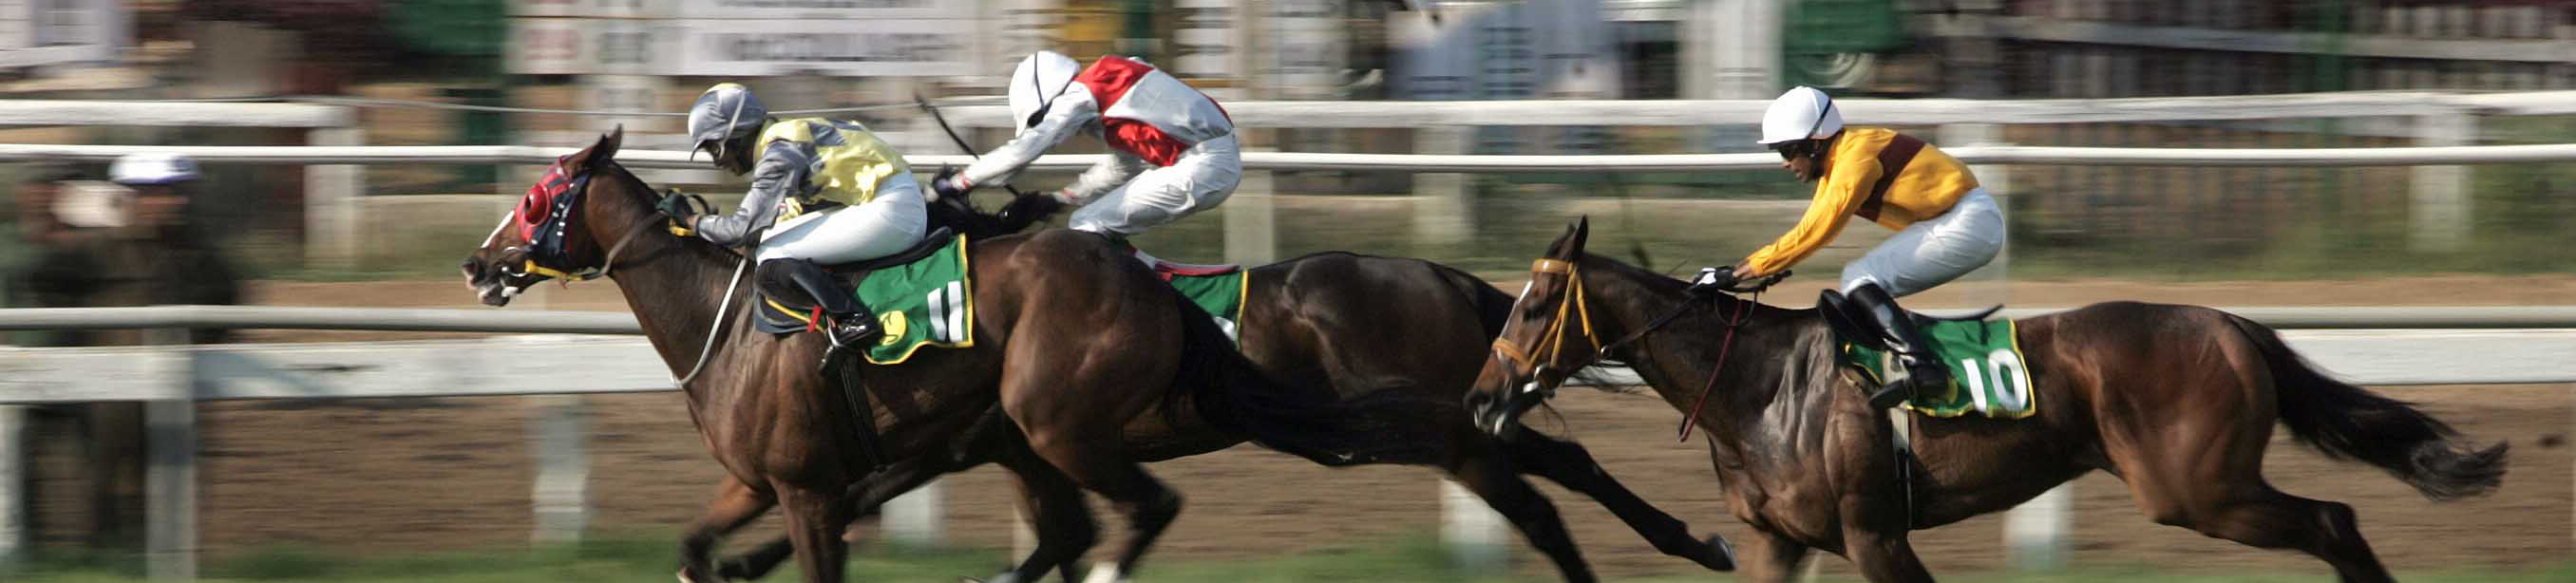 Bangalore turf club betting rules in limit bet it all sports betting online